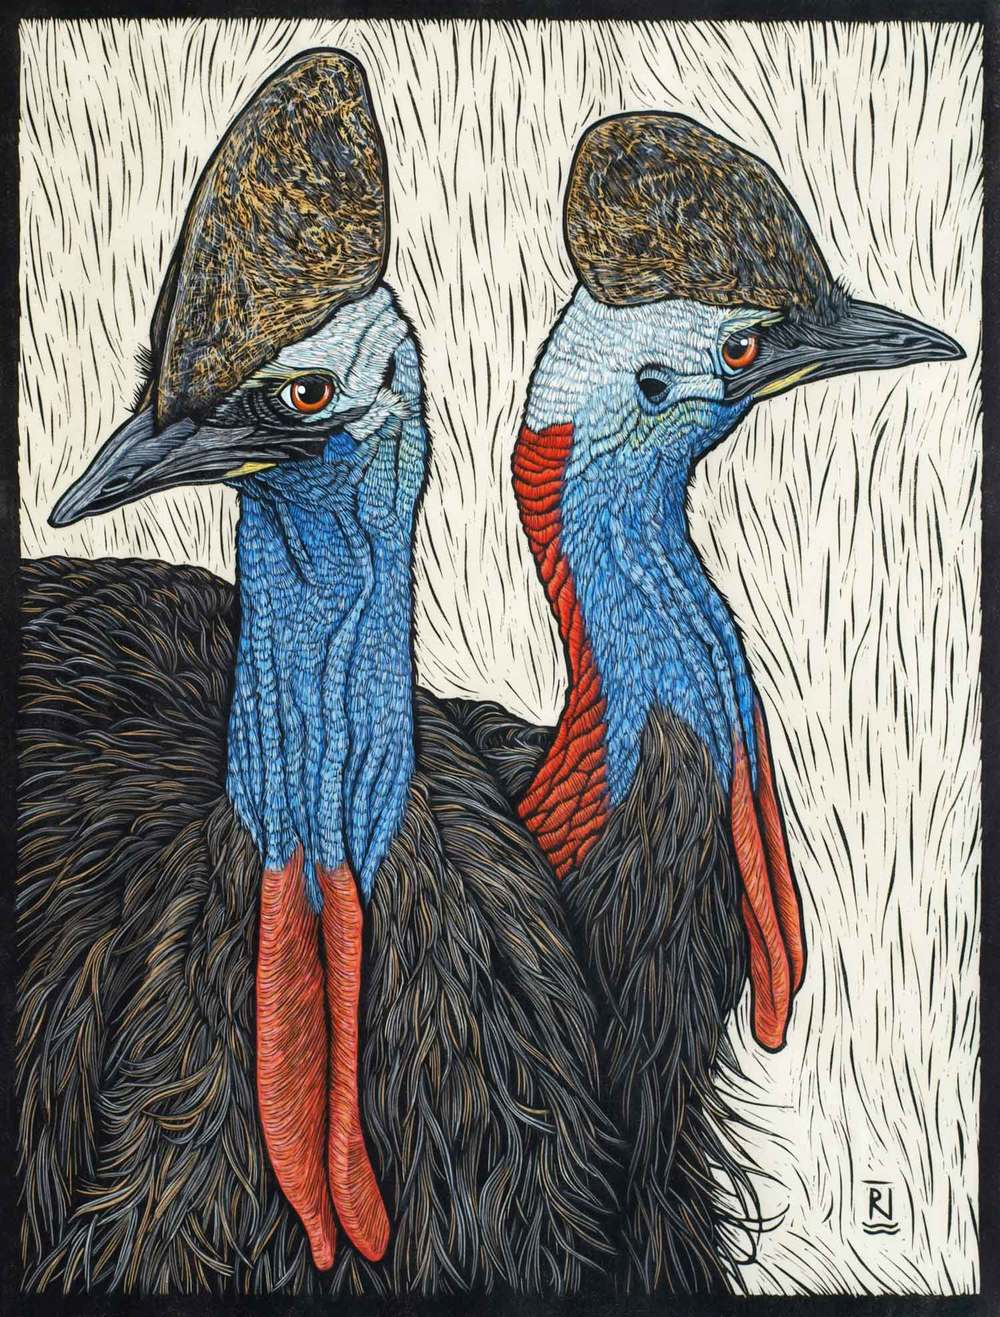 CASSOWARY  57 X 43 CM    EDITION OF 50  HAND COLOURED LINOCUT ON HANDMADE JAPANESE PAPER  $1,350